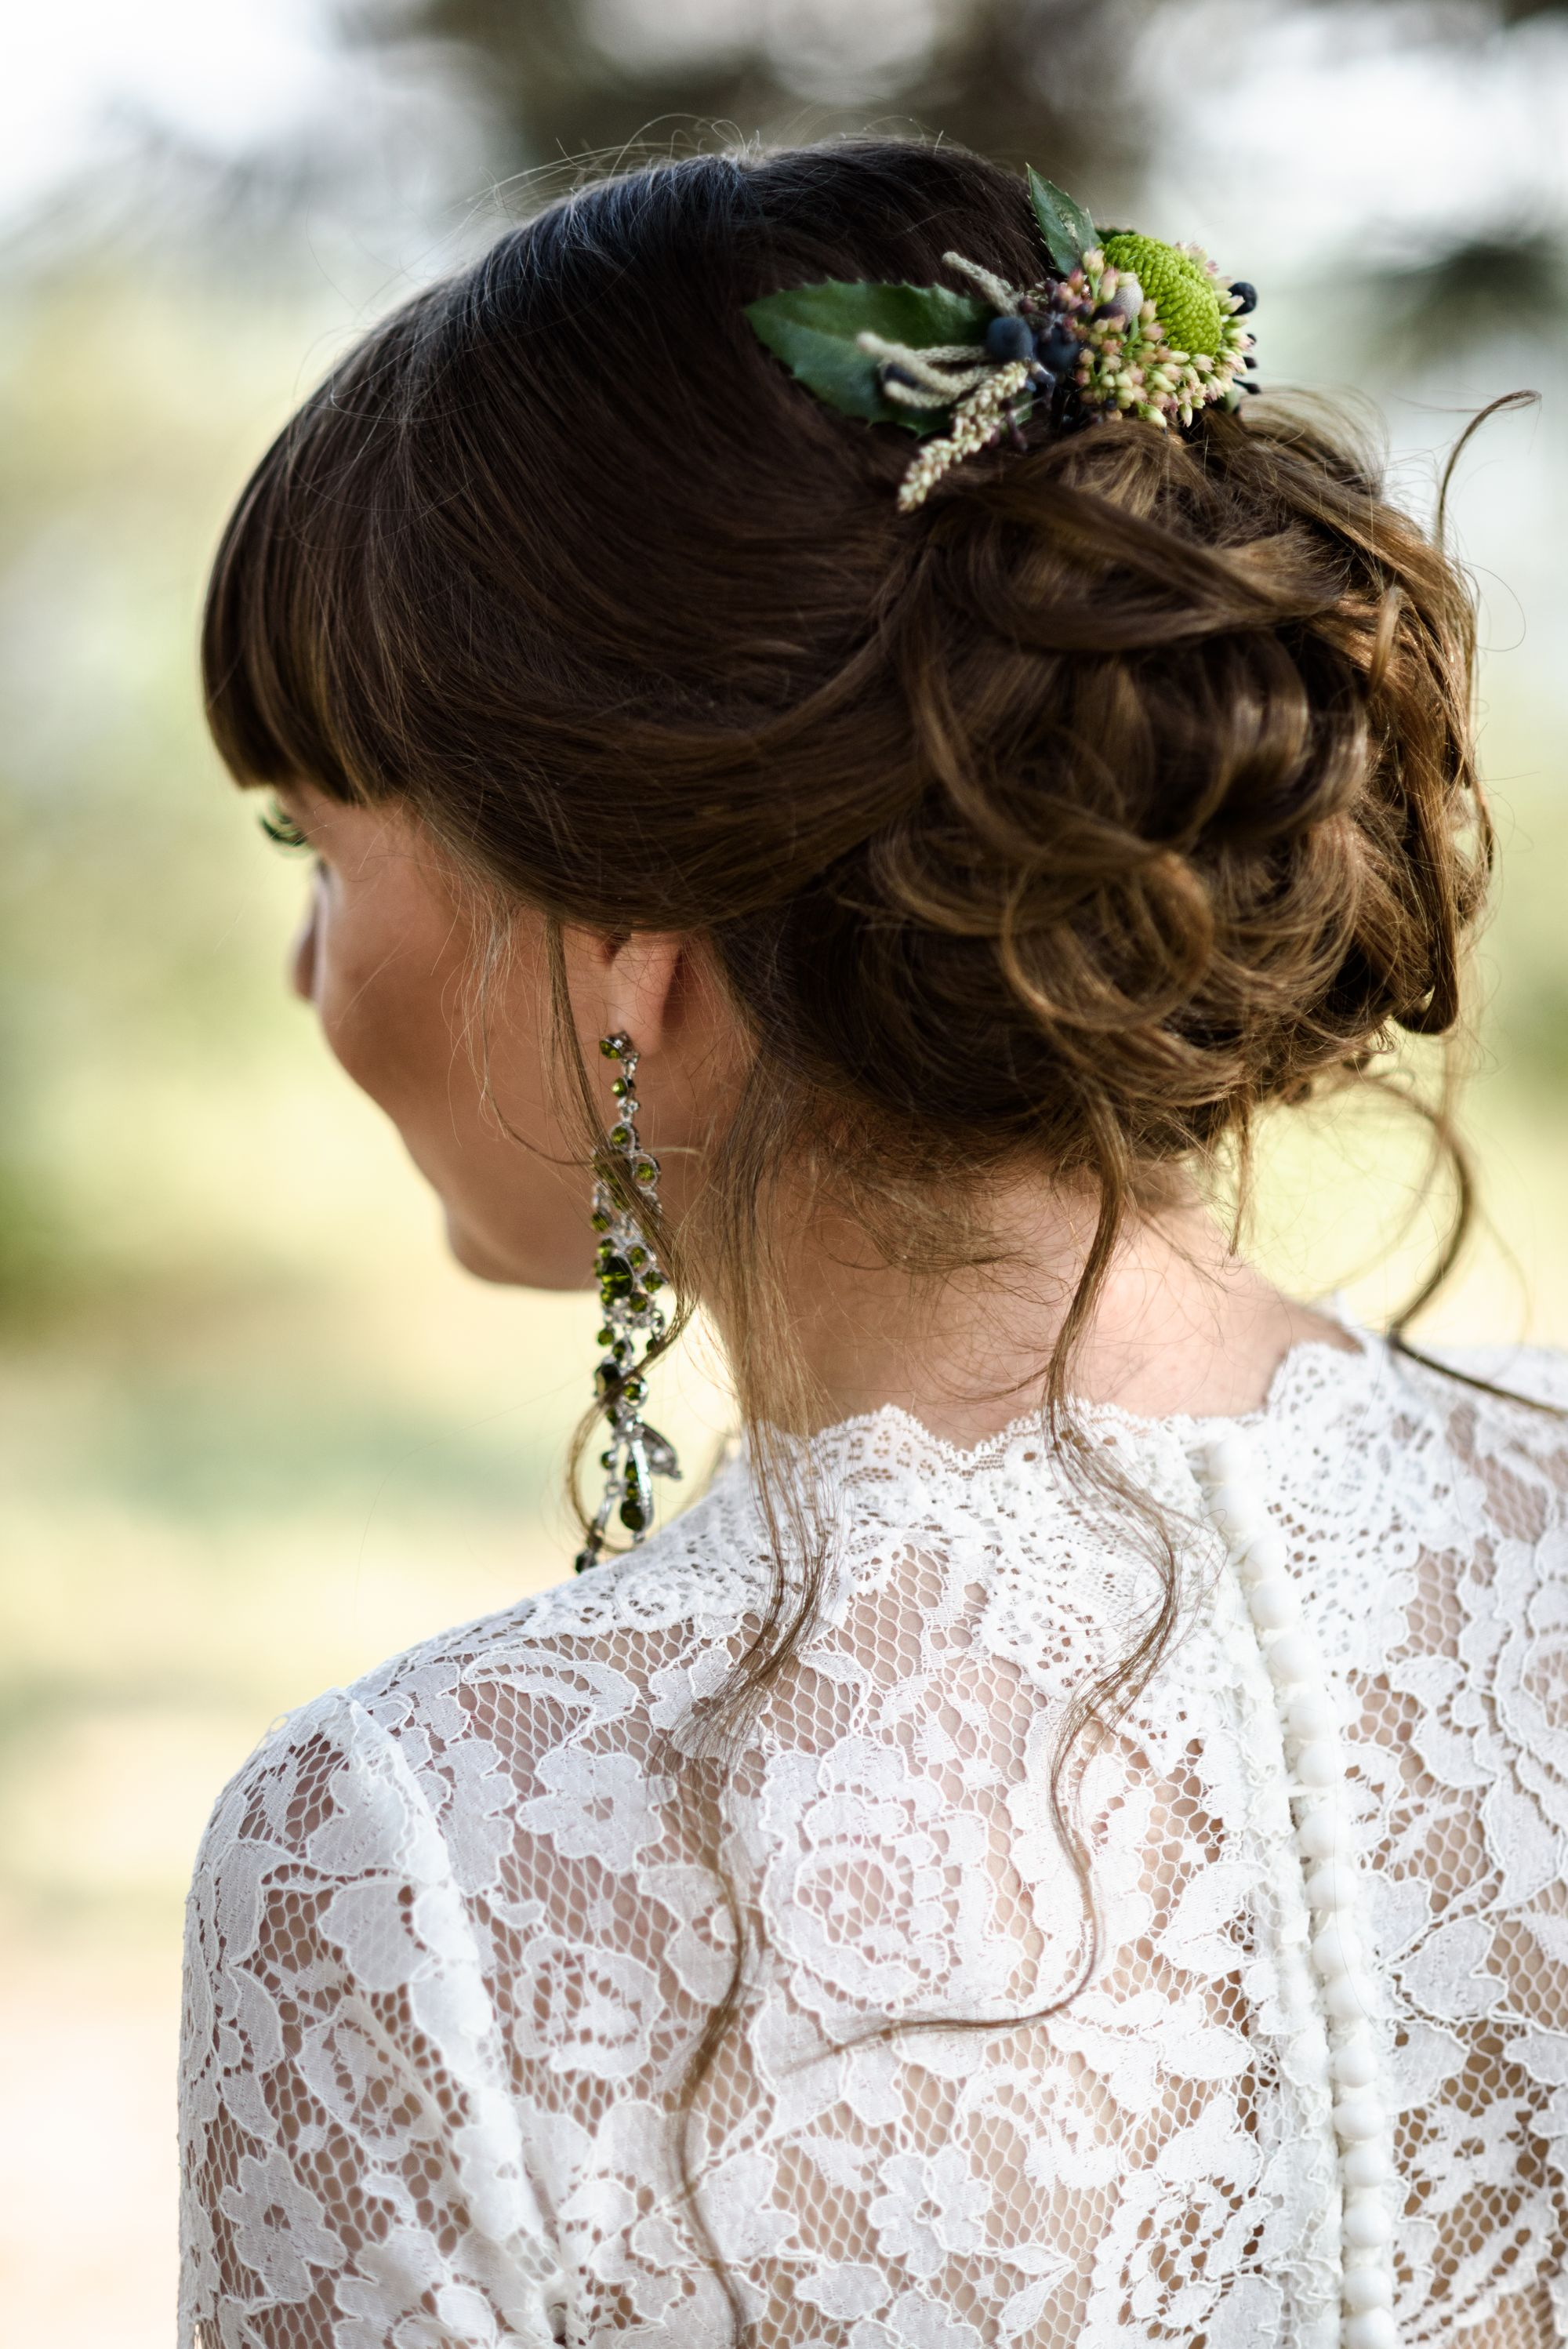 bride-hair-back-LNMQPCW.jpg